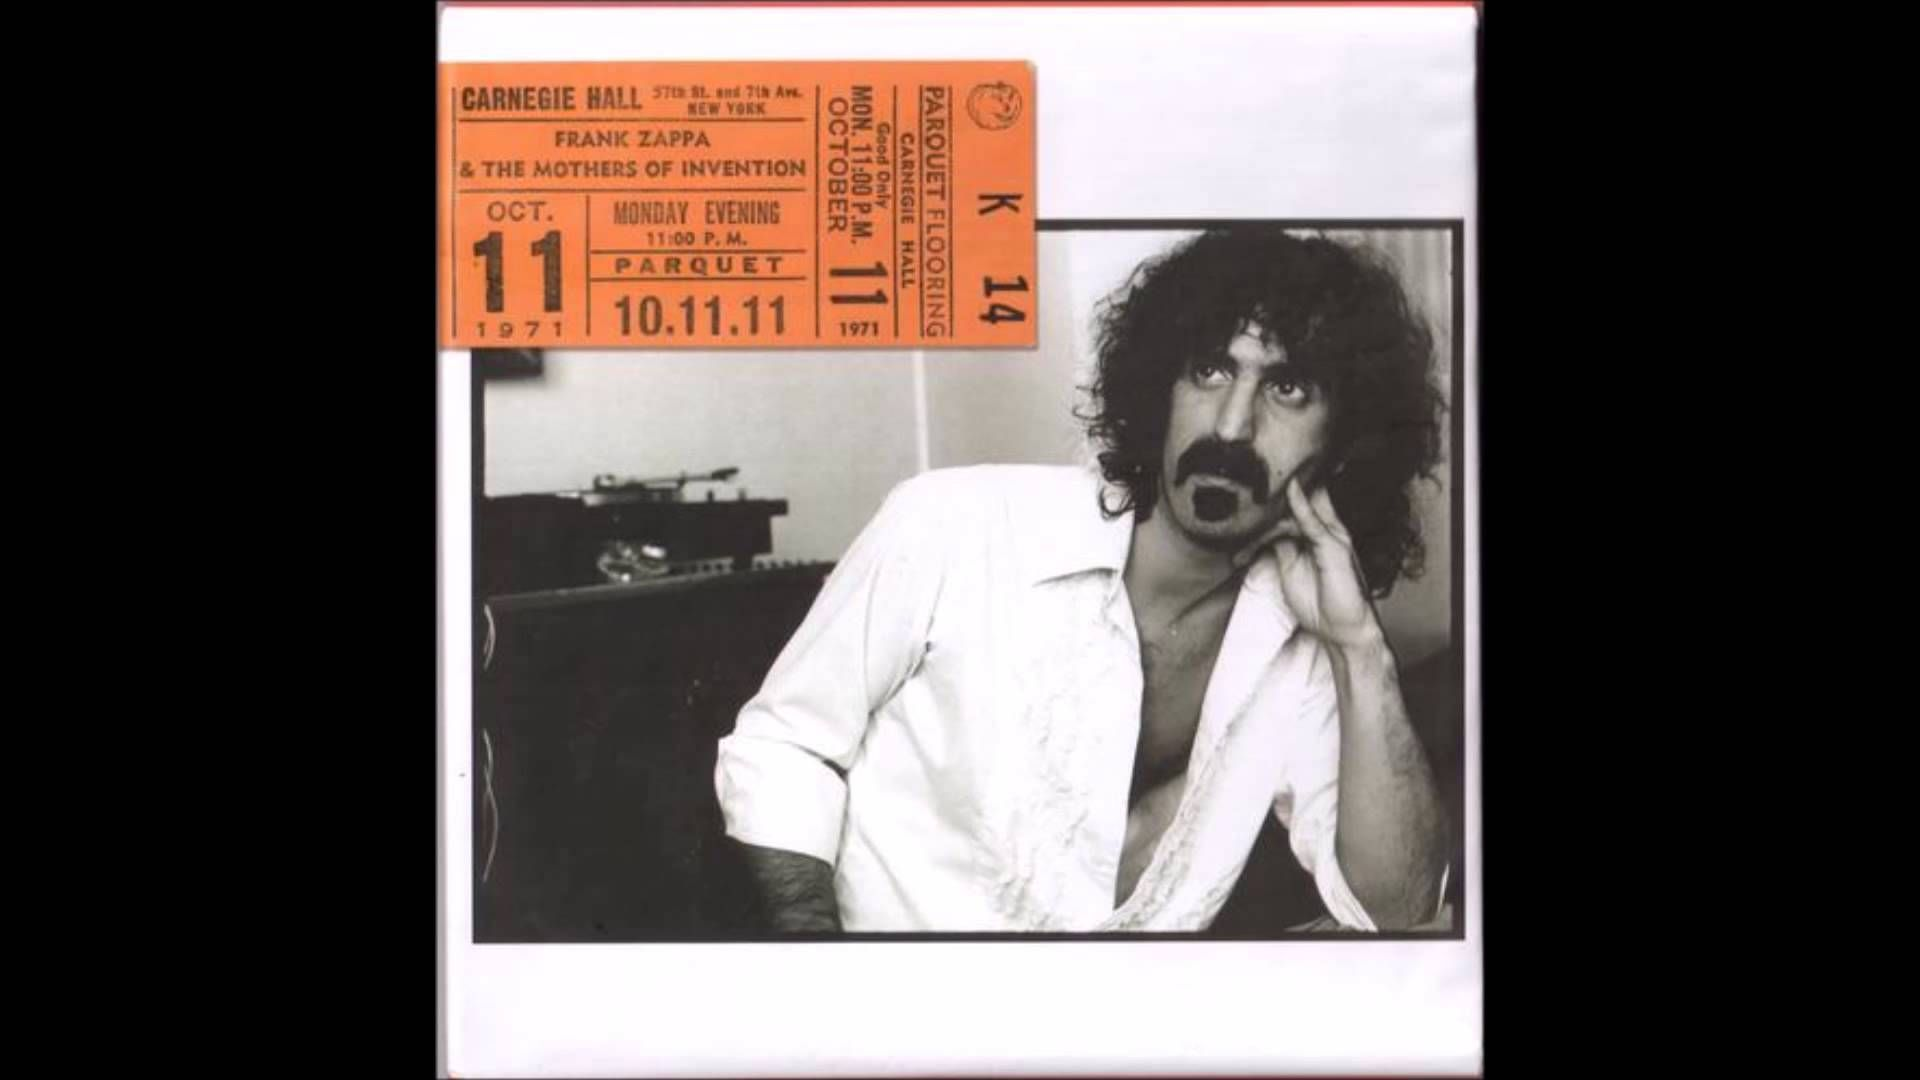 Frank Zappa and The Mothers – «Carnegie Hall» (3 cd)